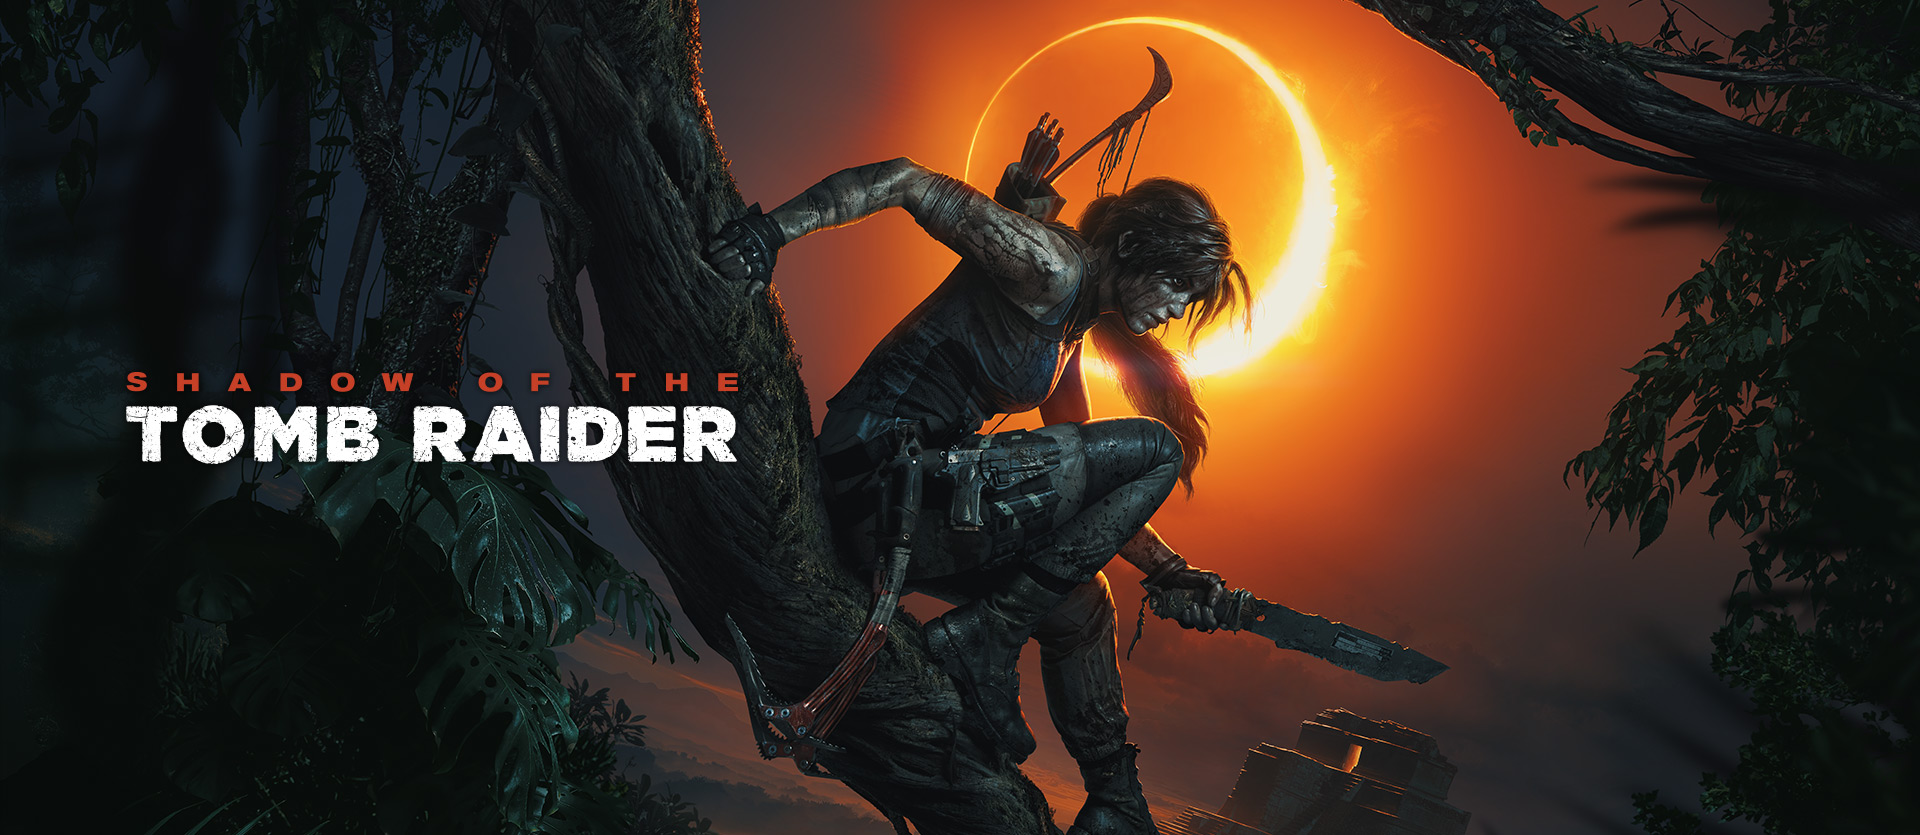 Shadow of the Tomb Raider, Lara Croft sits on a tree branch while holding a knife with an Eclipse in the background